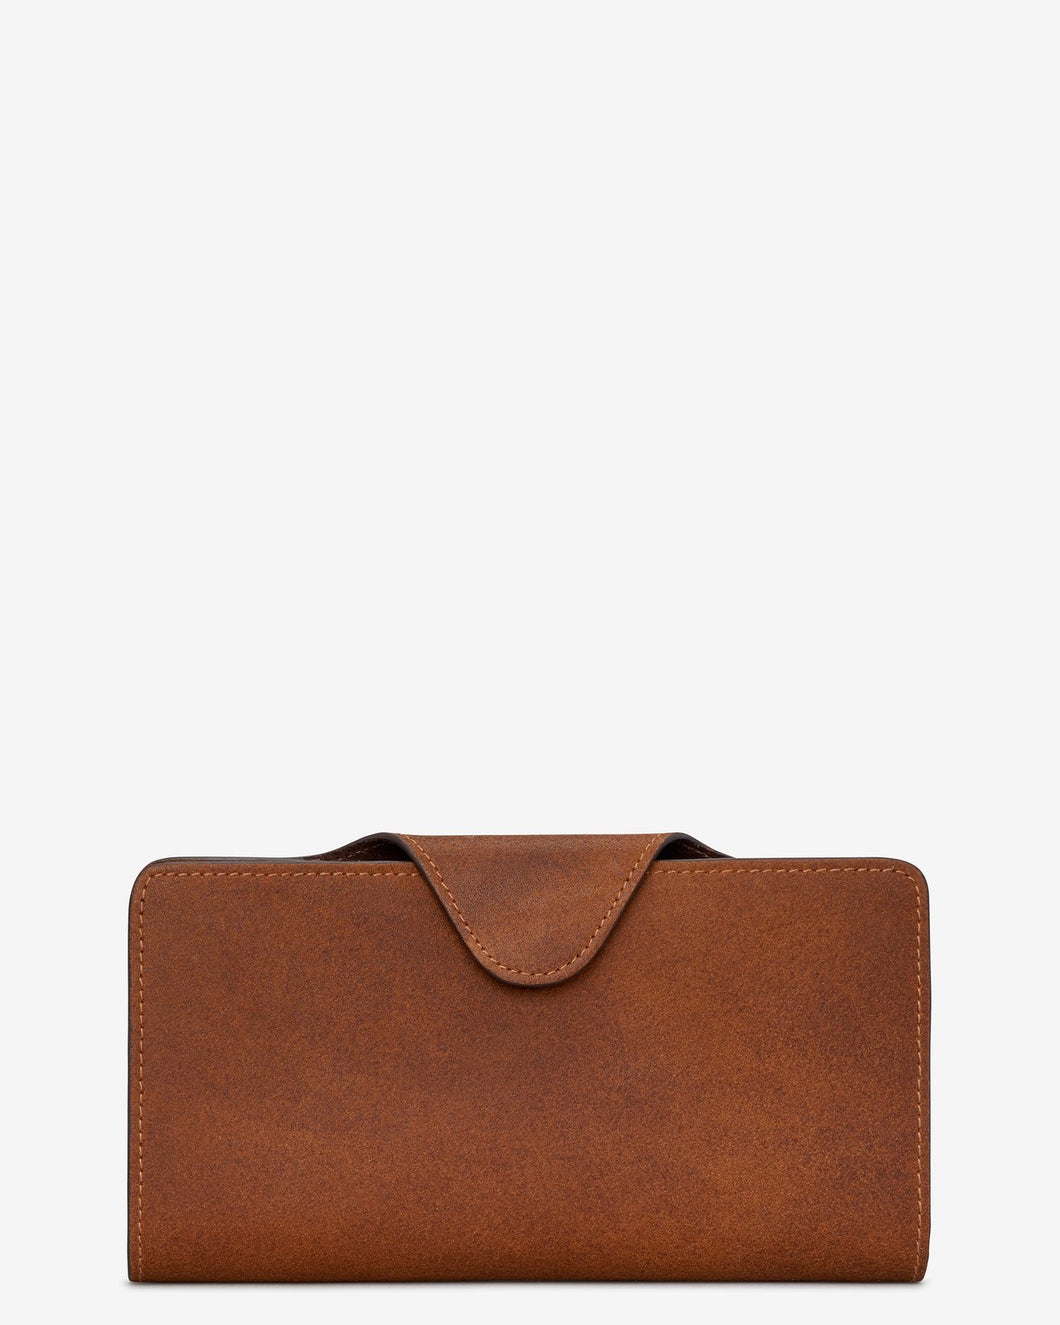 Yoshi Brown Satchel Leather Purse - Sands Boutique clothing and gifts